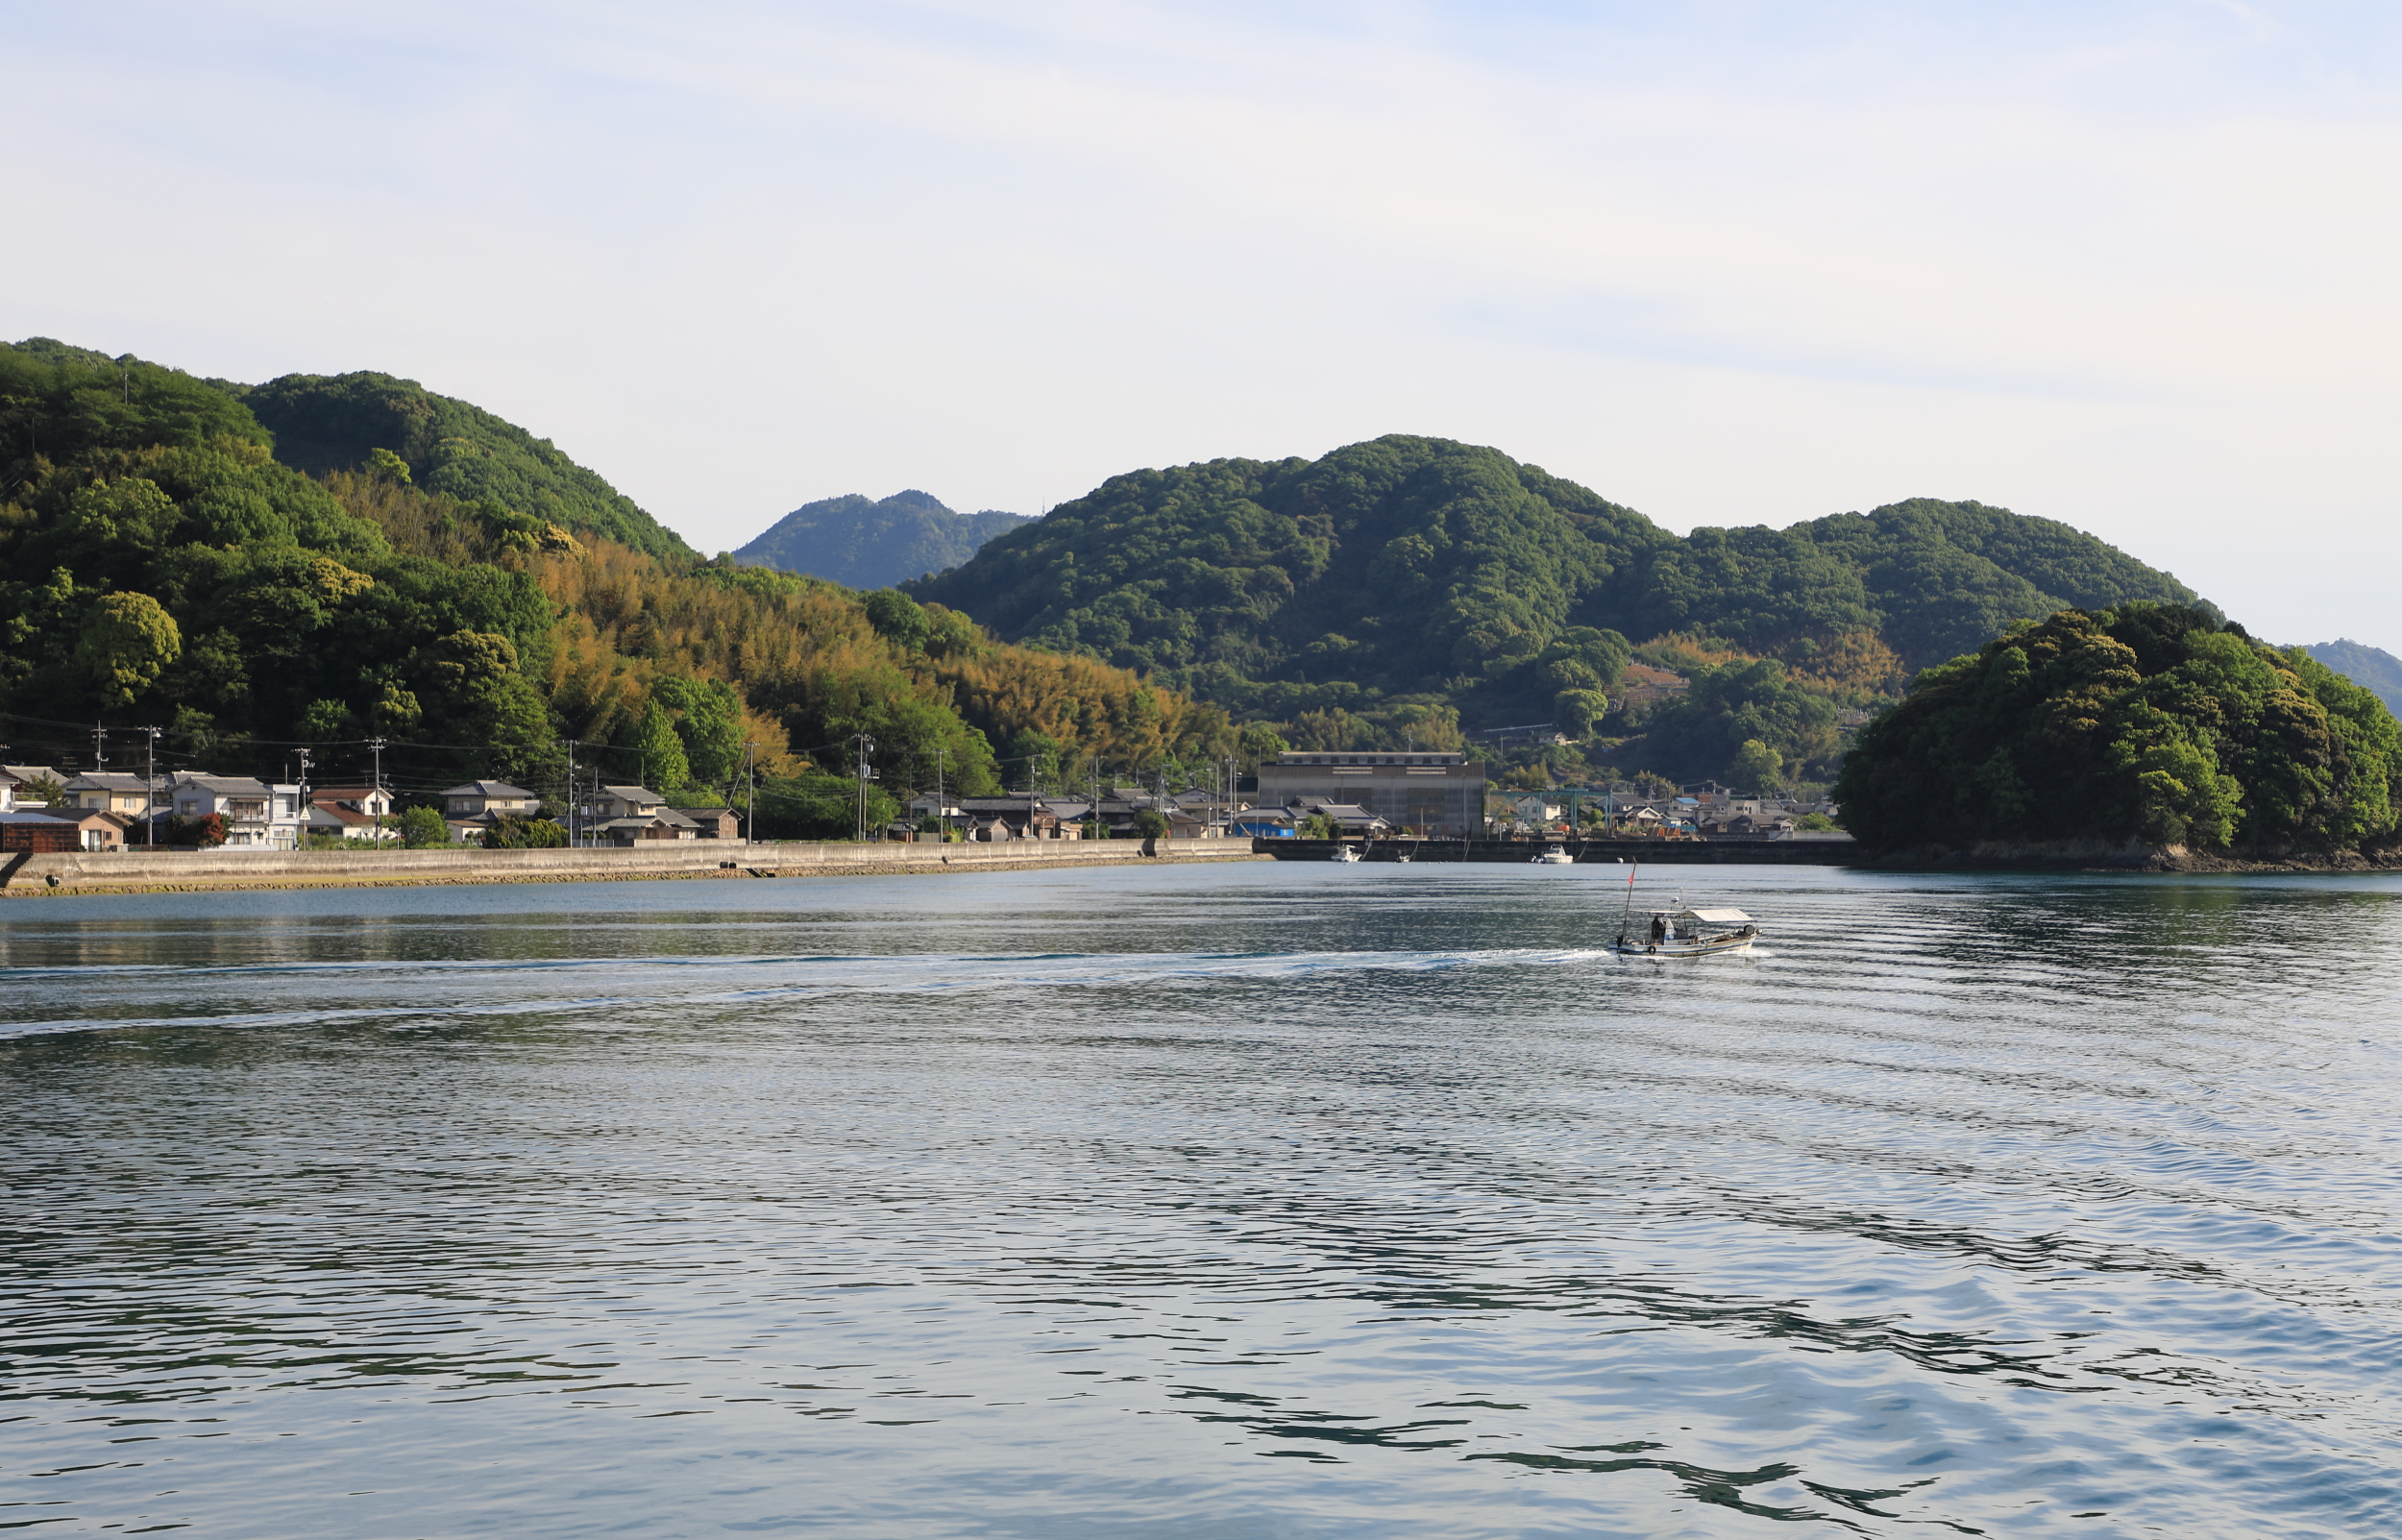 Located on the northern side of Osakikamijima, Tarumi is a relatively quiet port these days, mainly servicing ferry boats and local fishermen. Mt. Kannonmine, the highest point on the island, can be seen in the distant background.